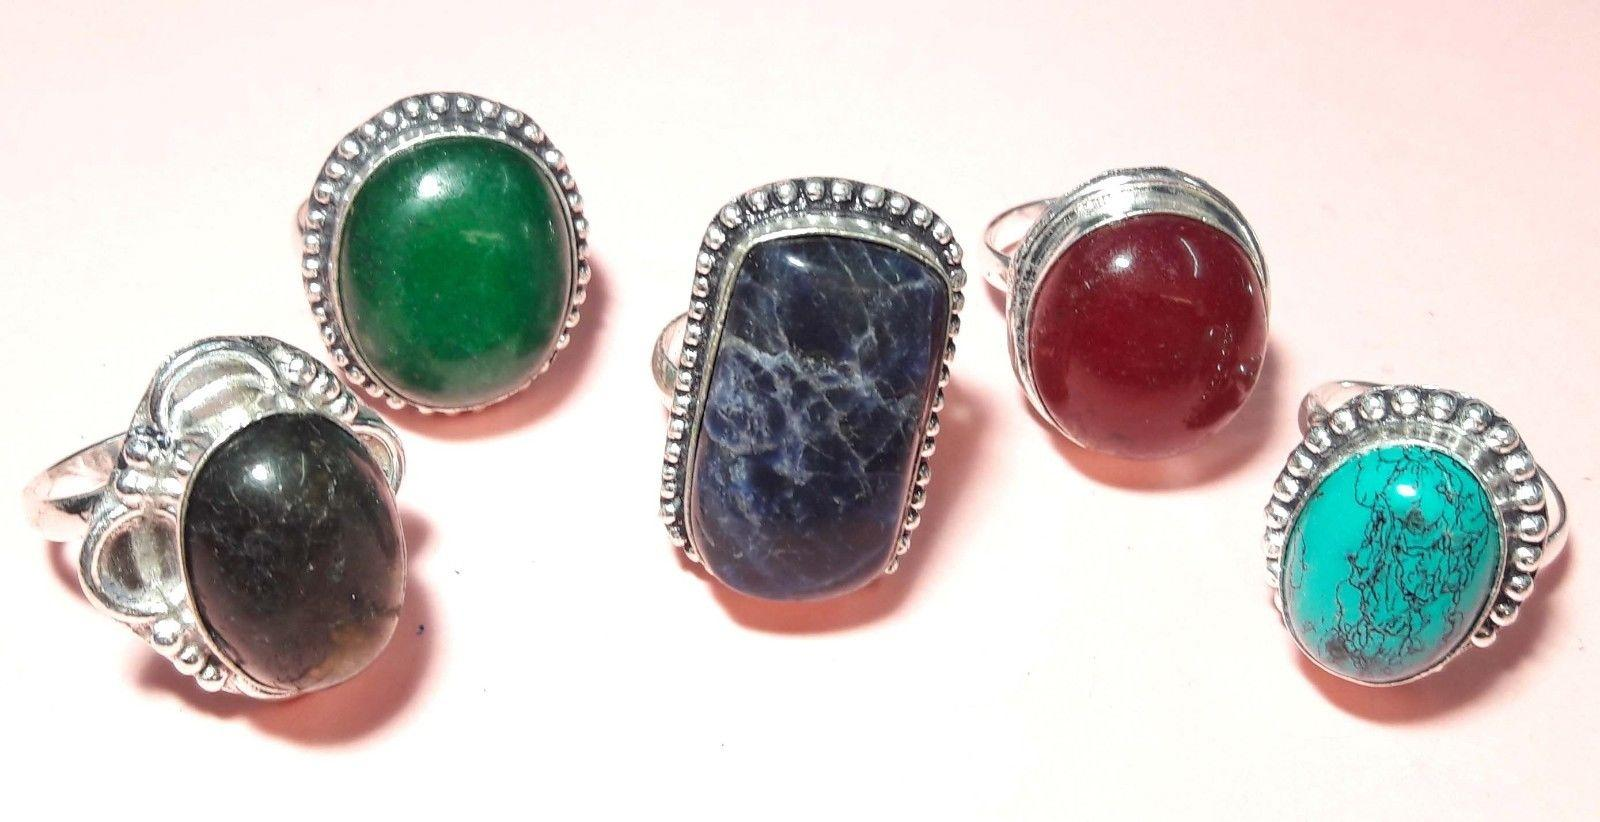 5PCS RING AMAZING DESIGN MIX STONE 925 STERLING SILVER OVERLAY SIZE ADJUSTABLE""